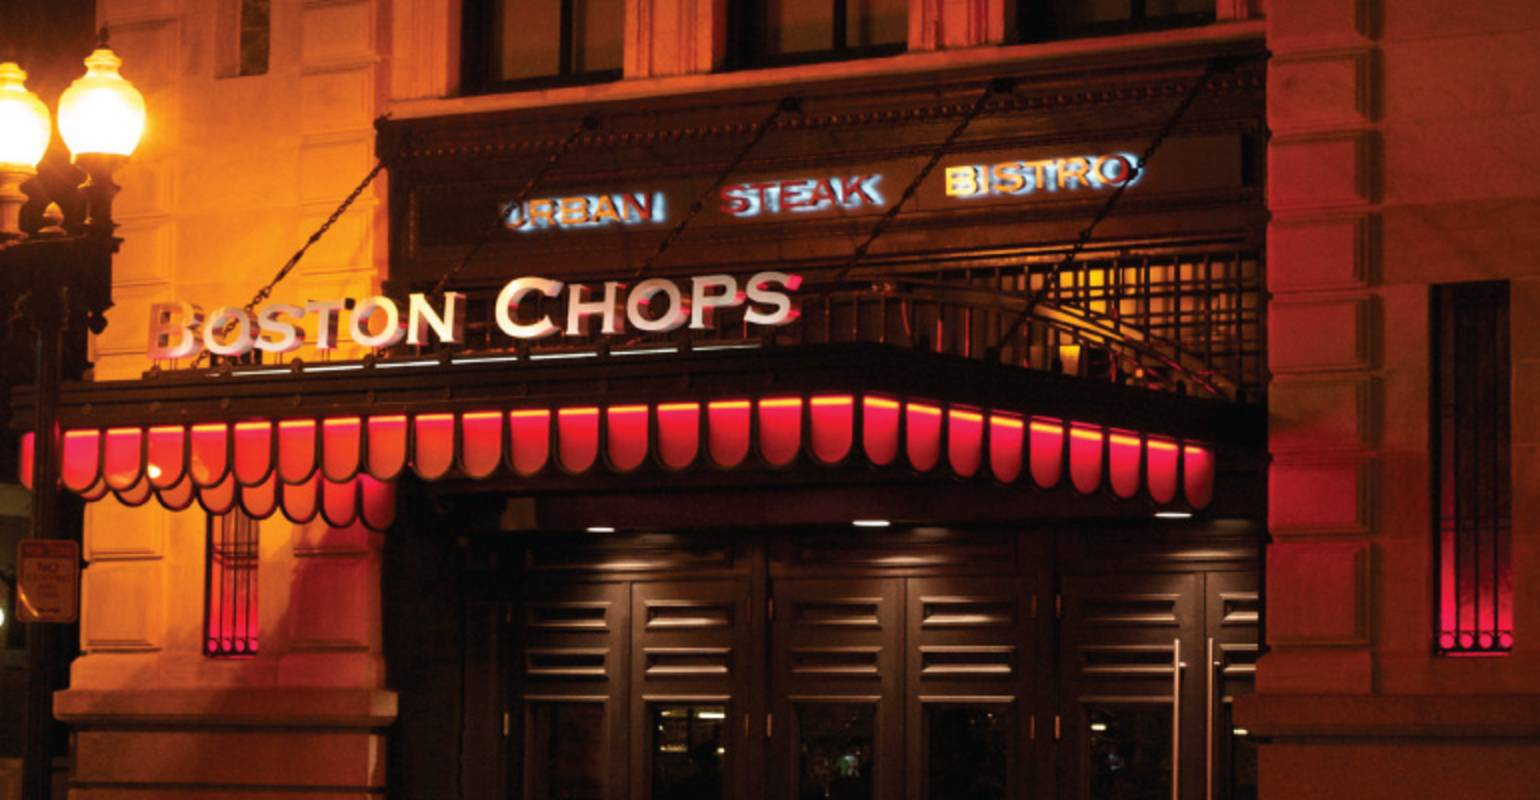 Boston Chops (Washington St.)